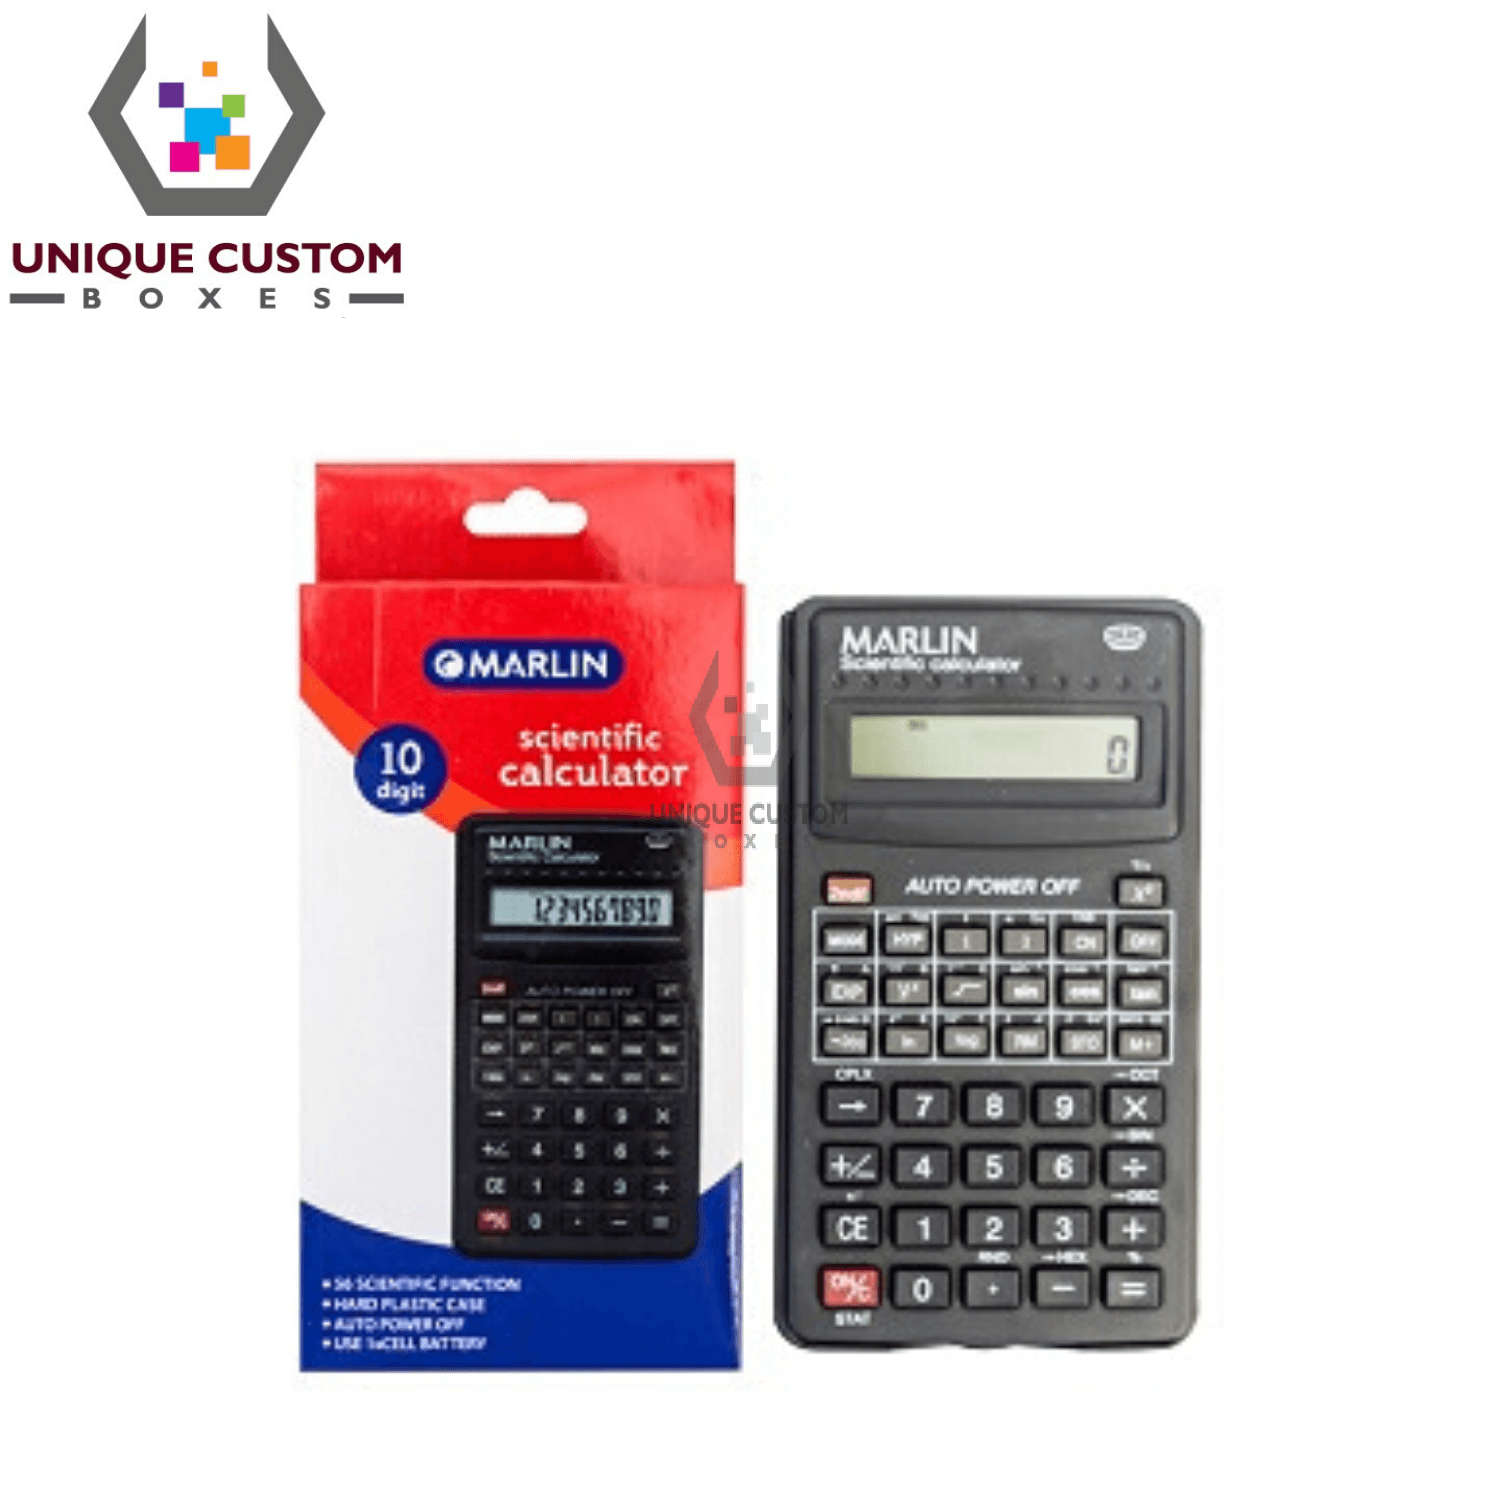 Calculator Boxes-1